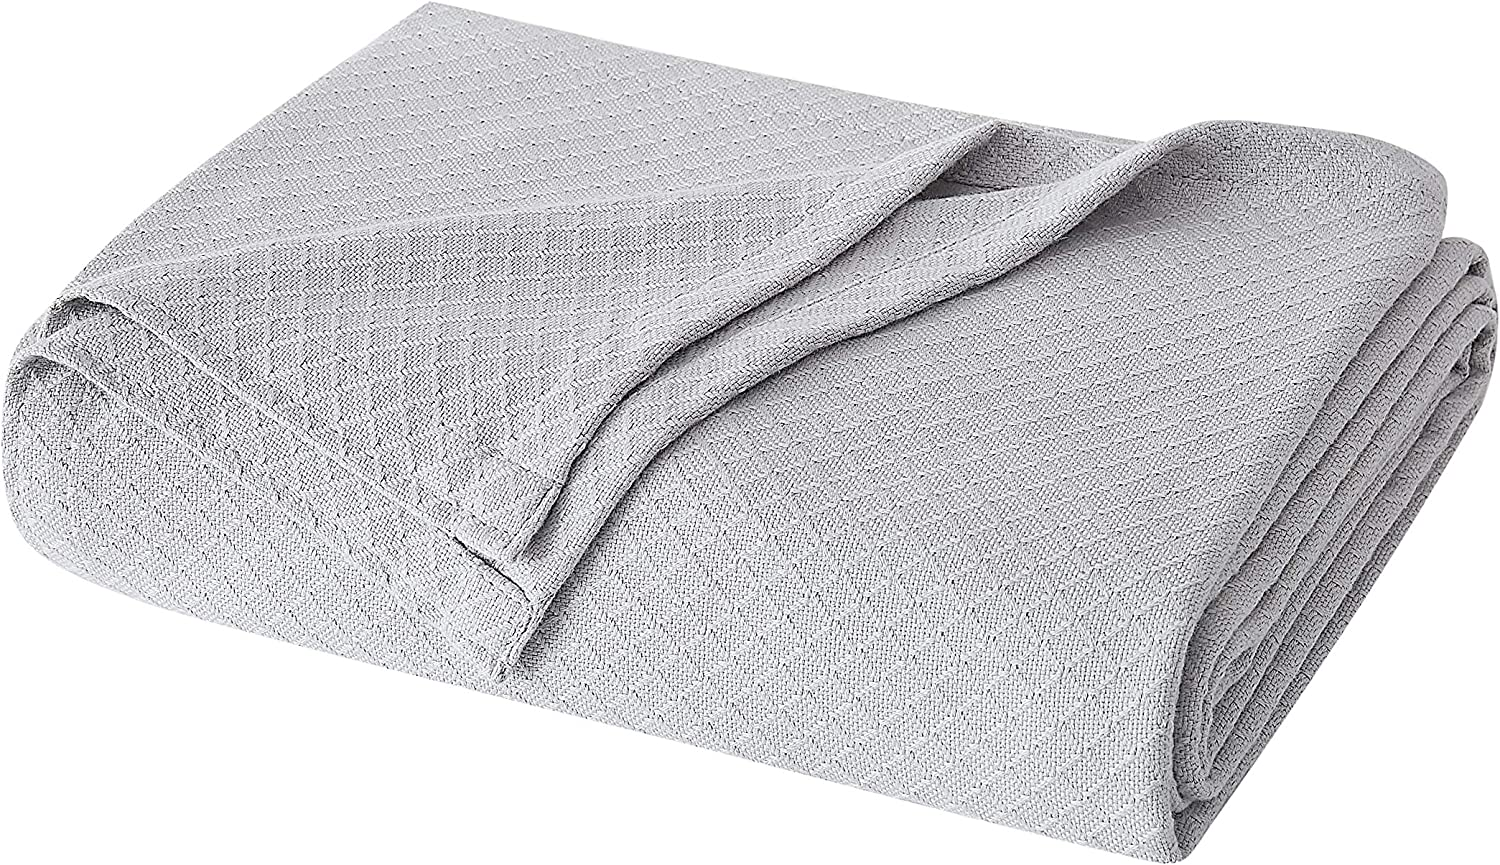 Fort Worth Mall Charisma Deluxe Woven Cotton Blanket Violet King Nippon regular agency Grey